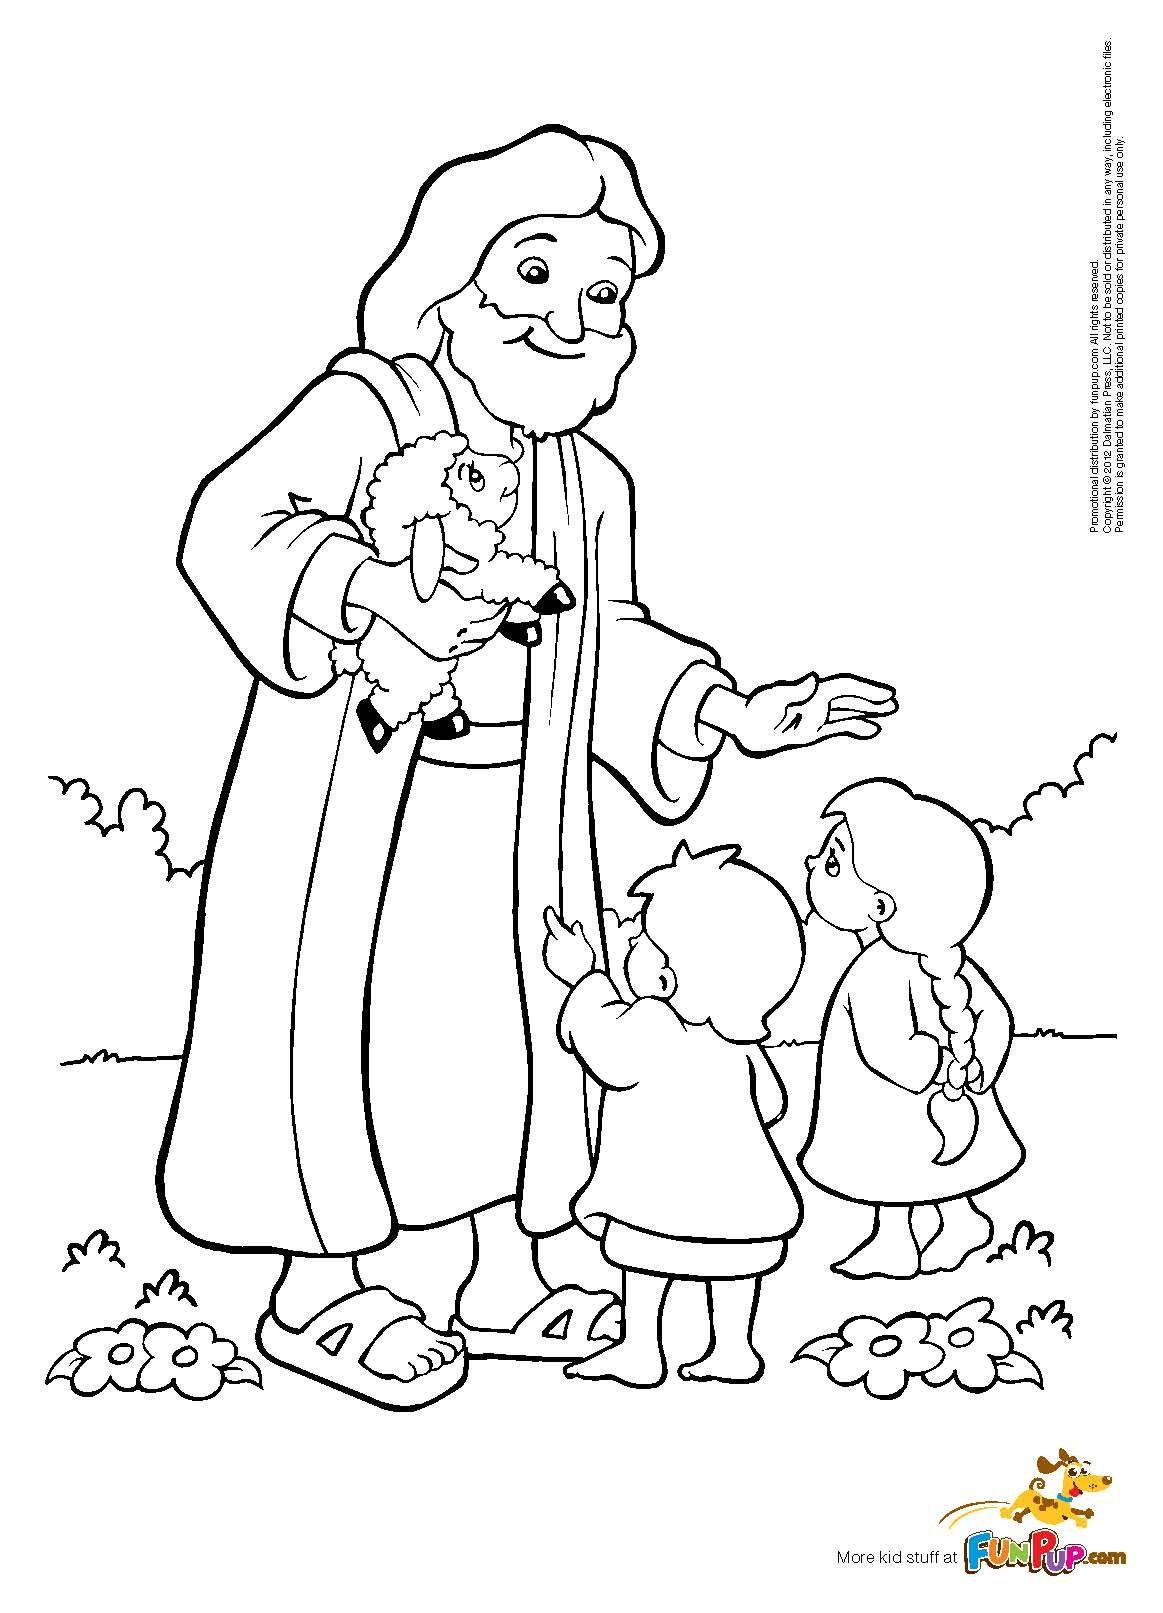 happy birthday jesus coloring pages 08 - Coloring Pages Jesus